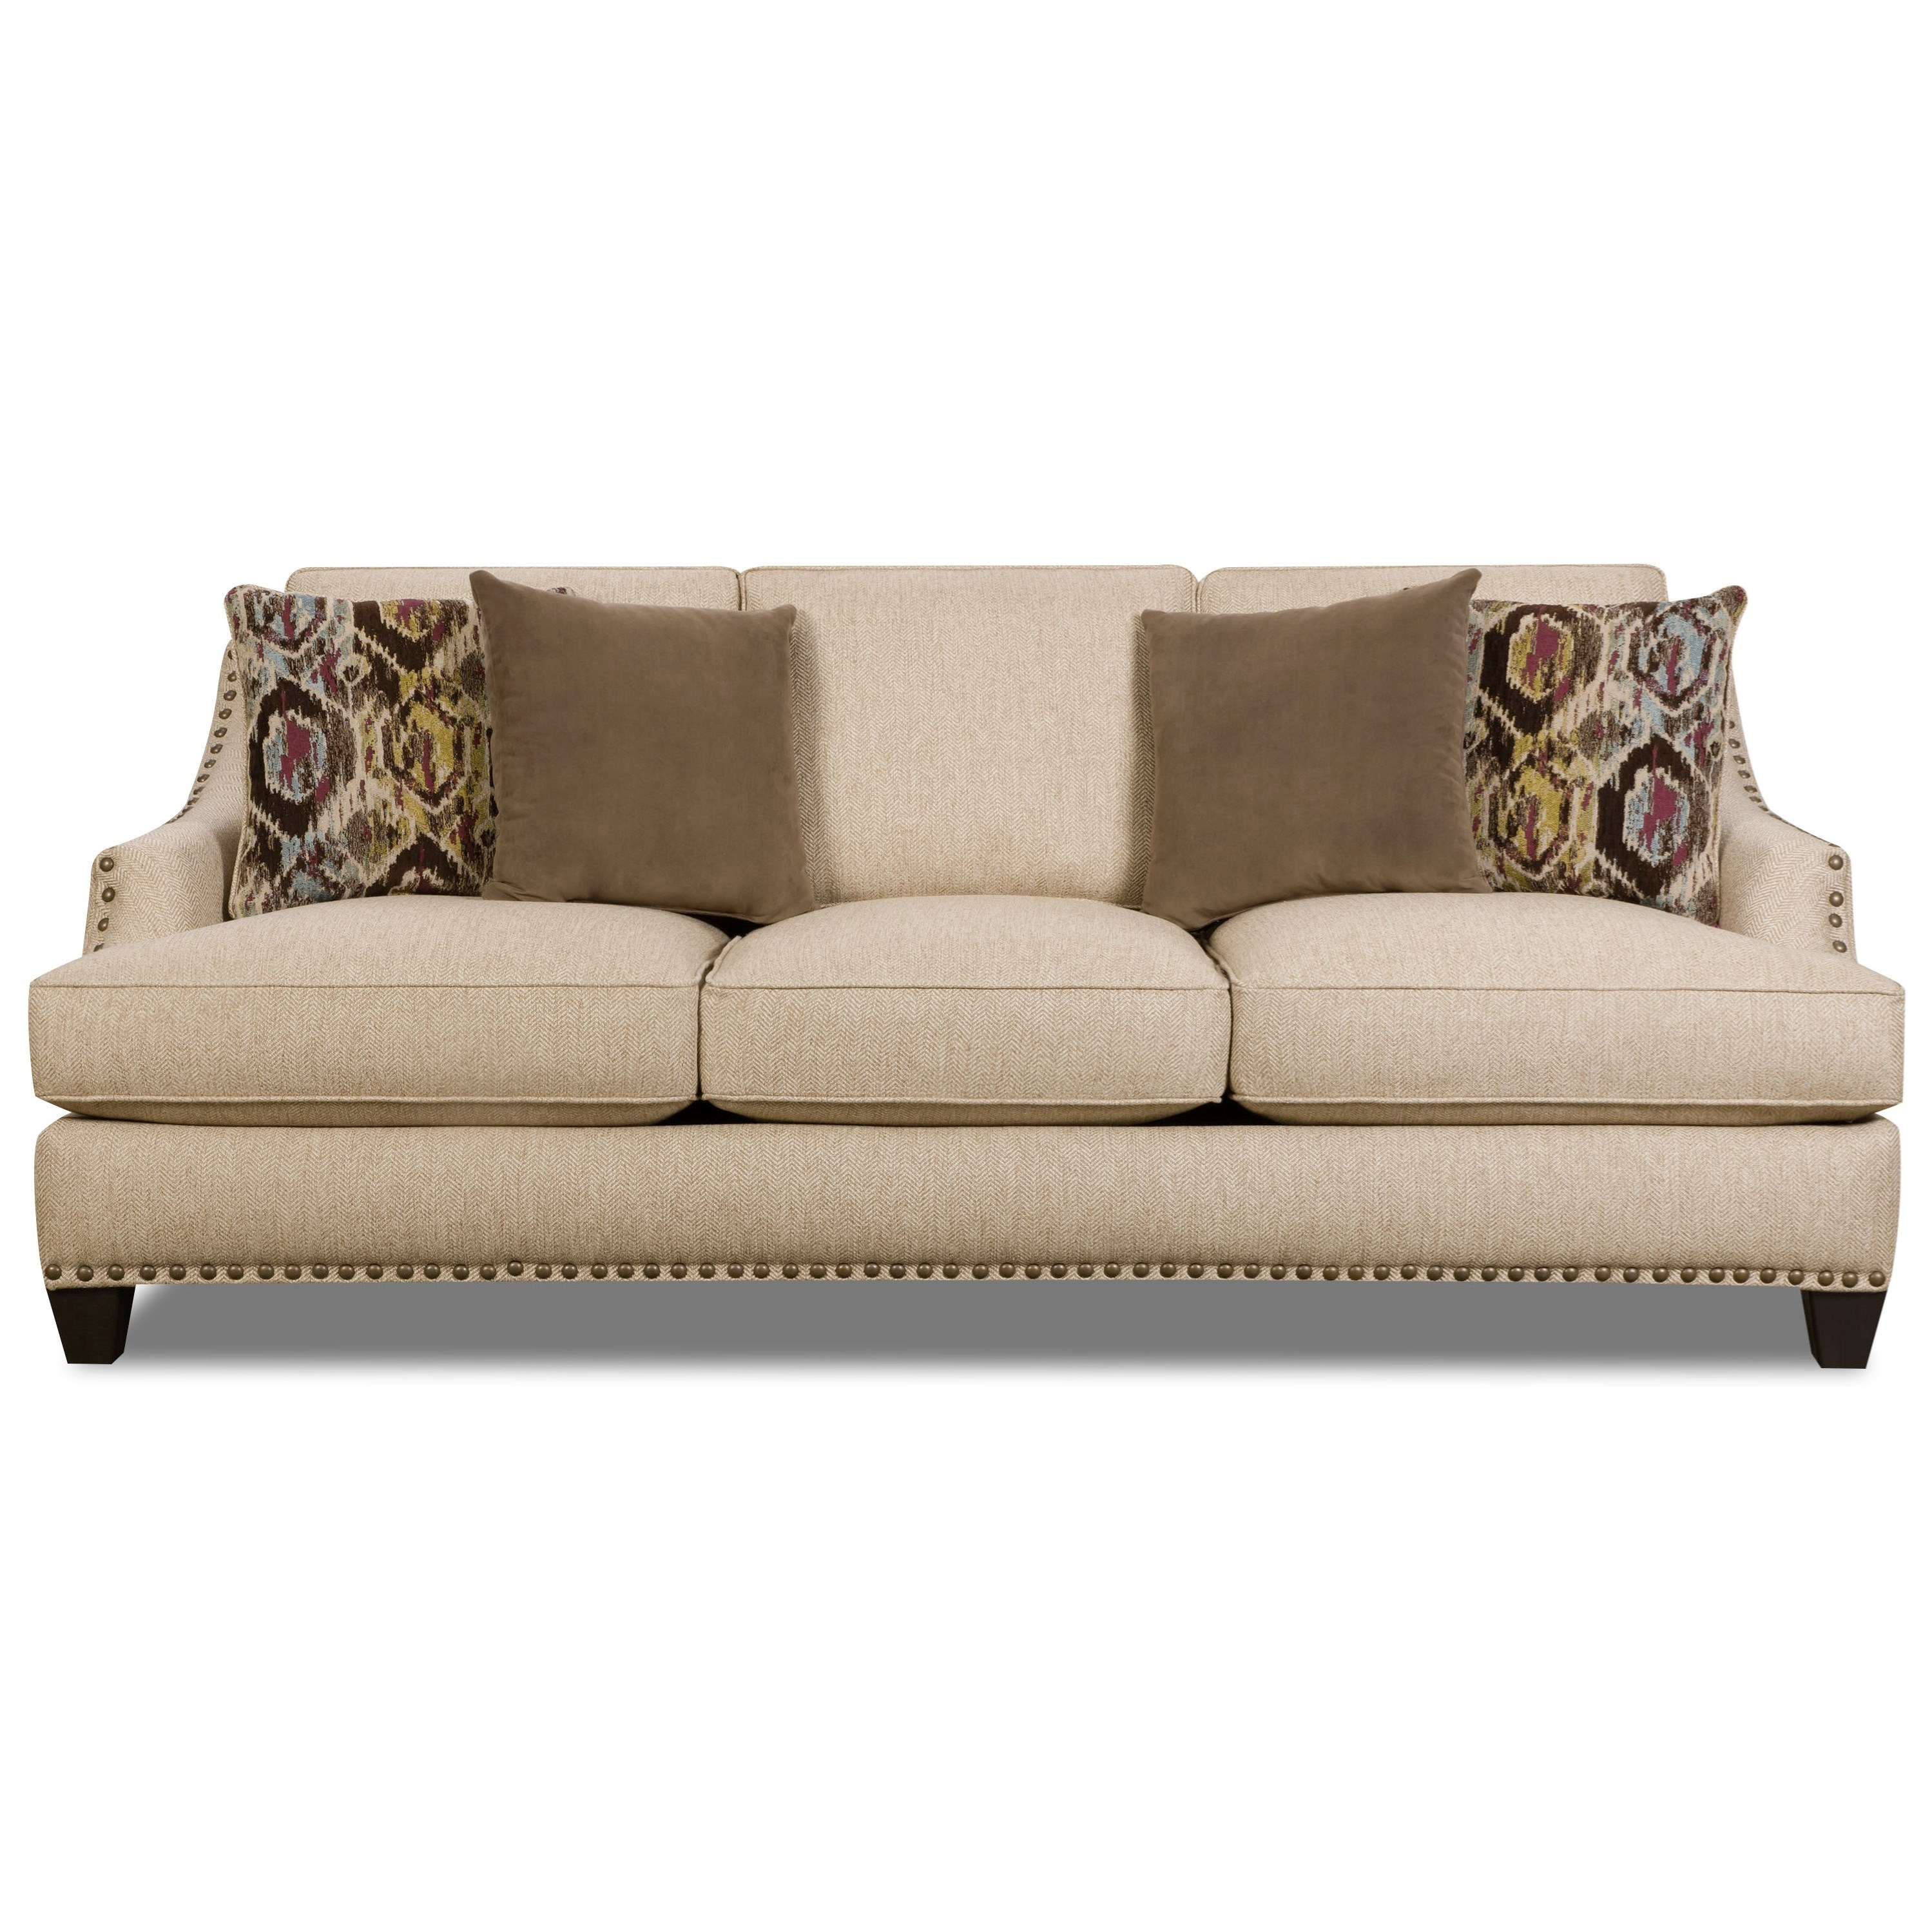 Corinthian 5300 Traditional Styled Sectional Sofa With: Corinthian Sofa Corinthian Furniture Raymour Flanigan